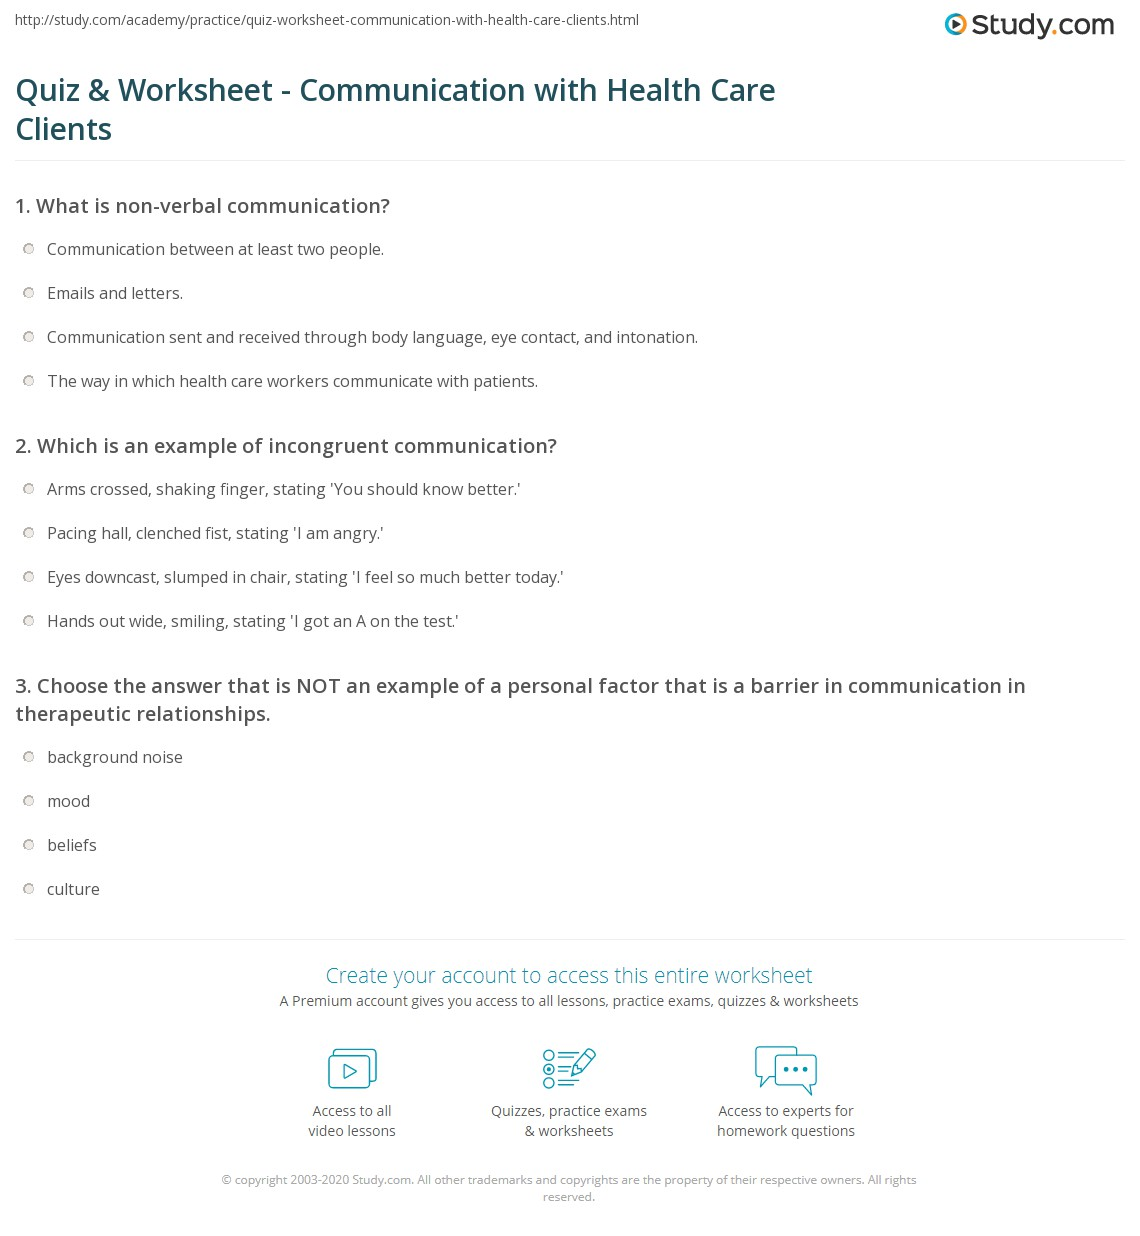 Uncategorized Body Language Worksheets quiz worksheet communication with health care clients study com print between patients workers worksheet